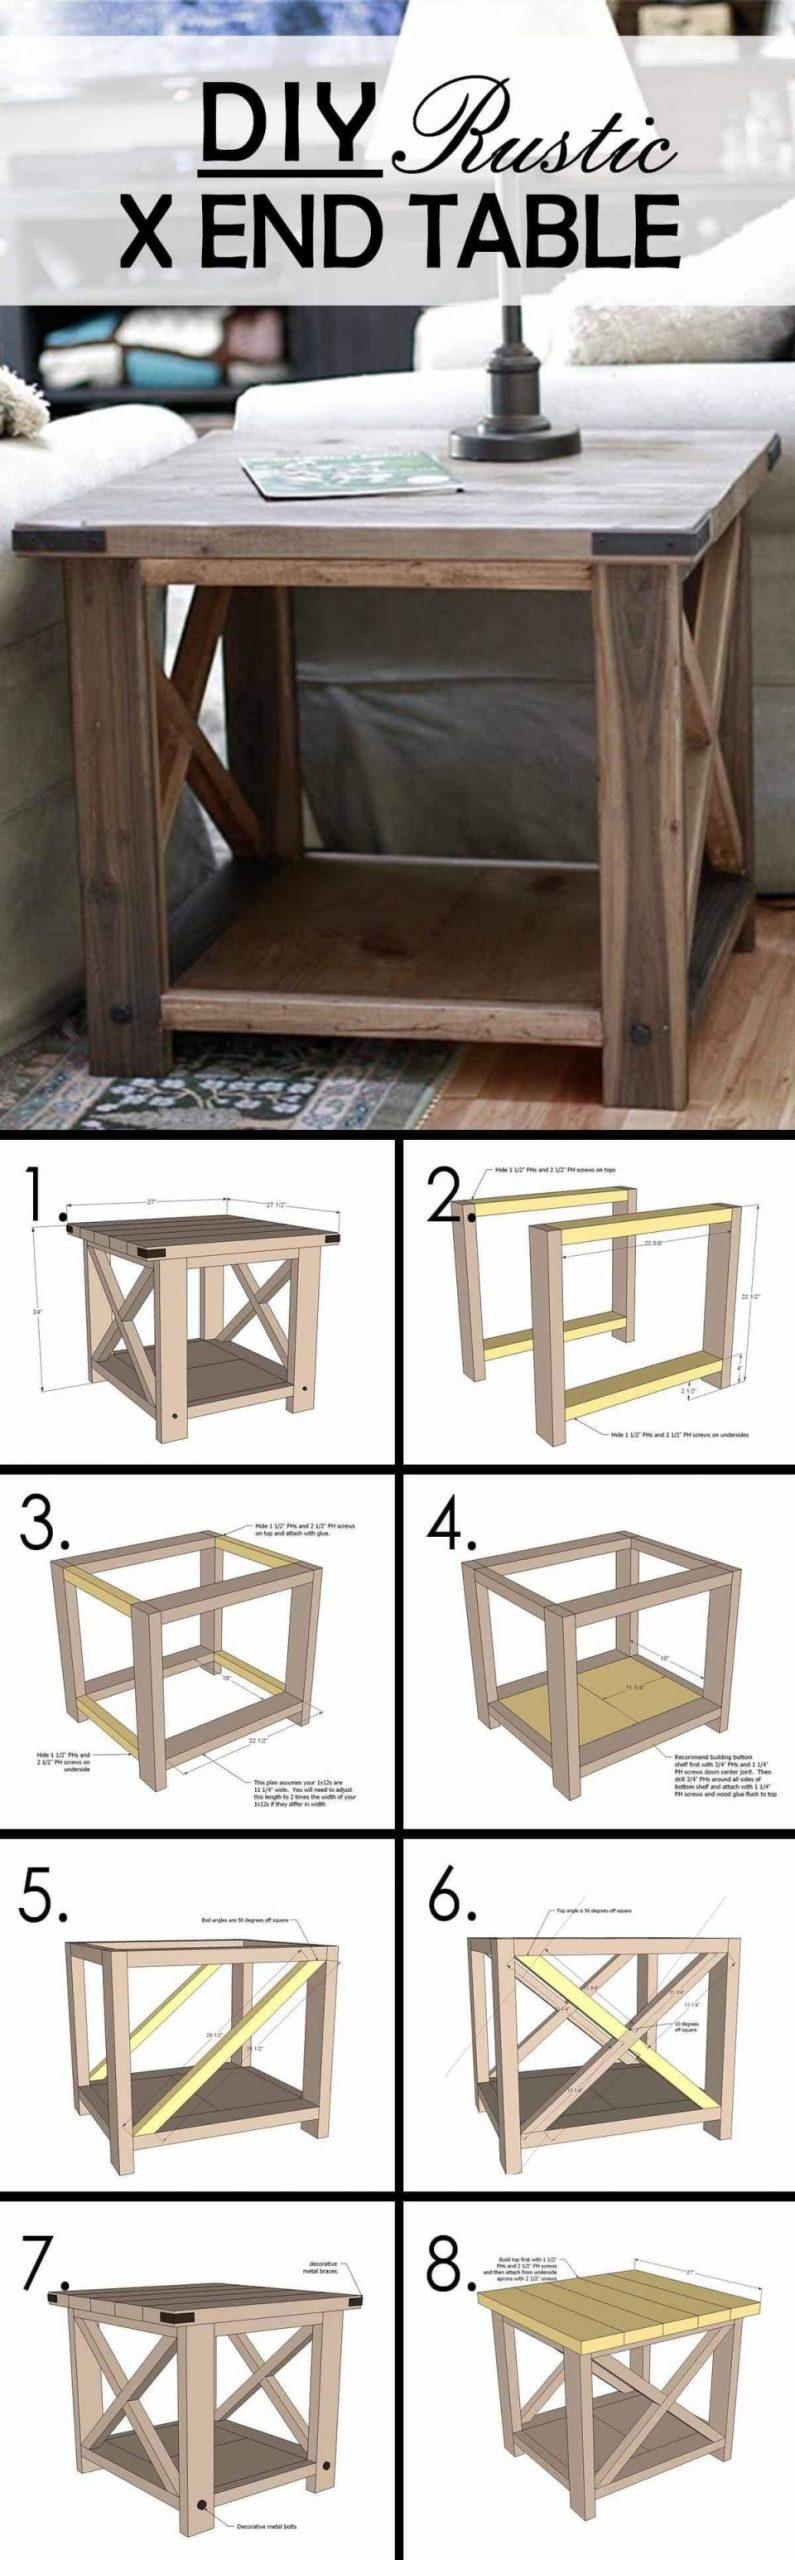 Fantastic build your own rustic furniture